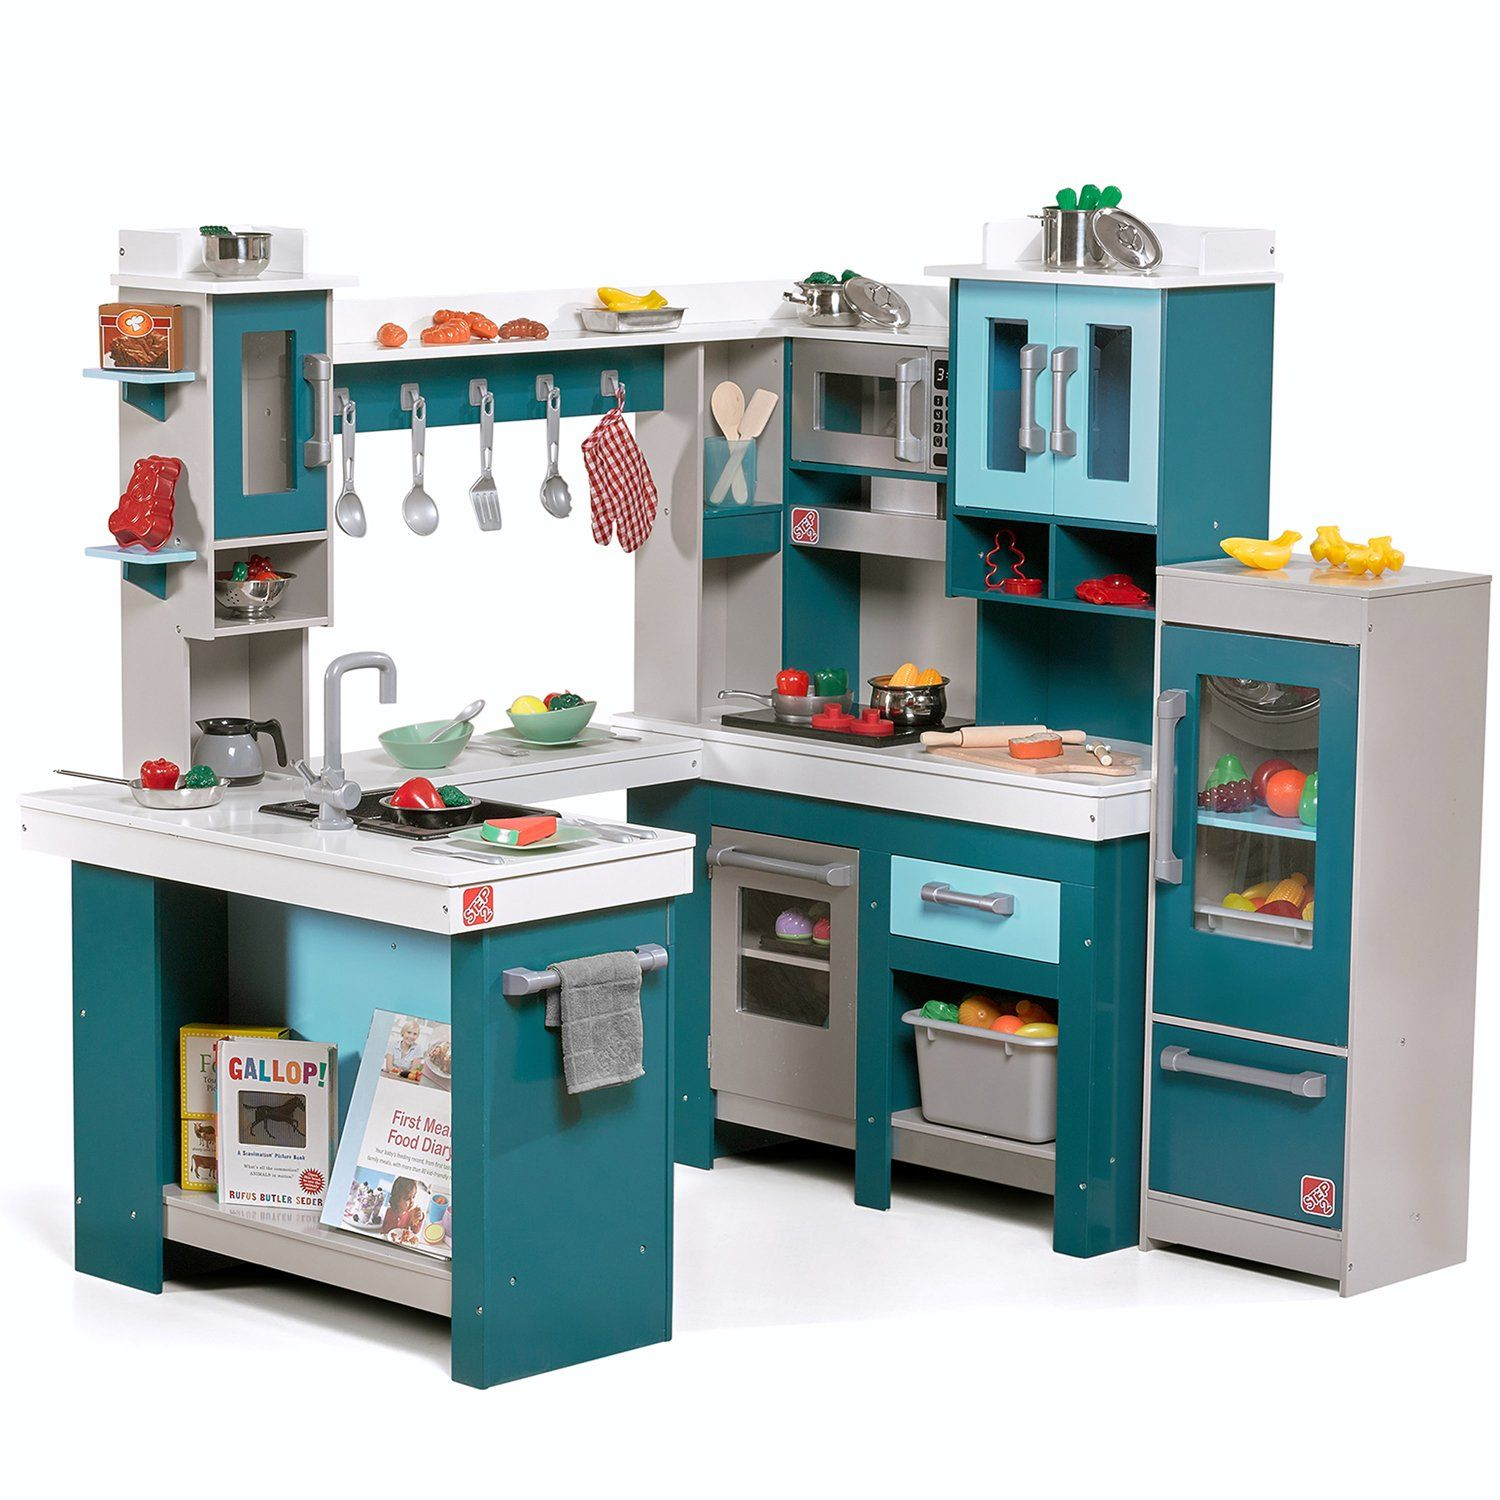 Step12 Grand Walk-In Wood Play Kitchen with 12 Piece Accessory Play